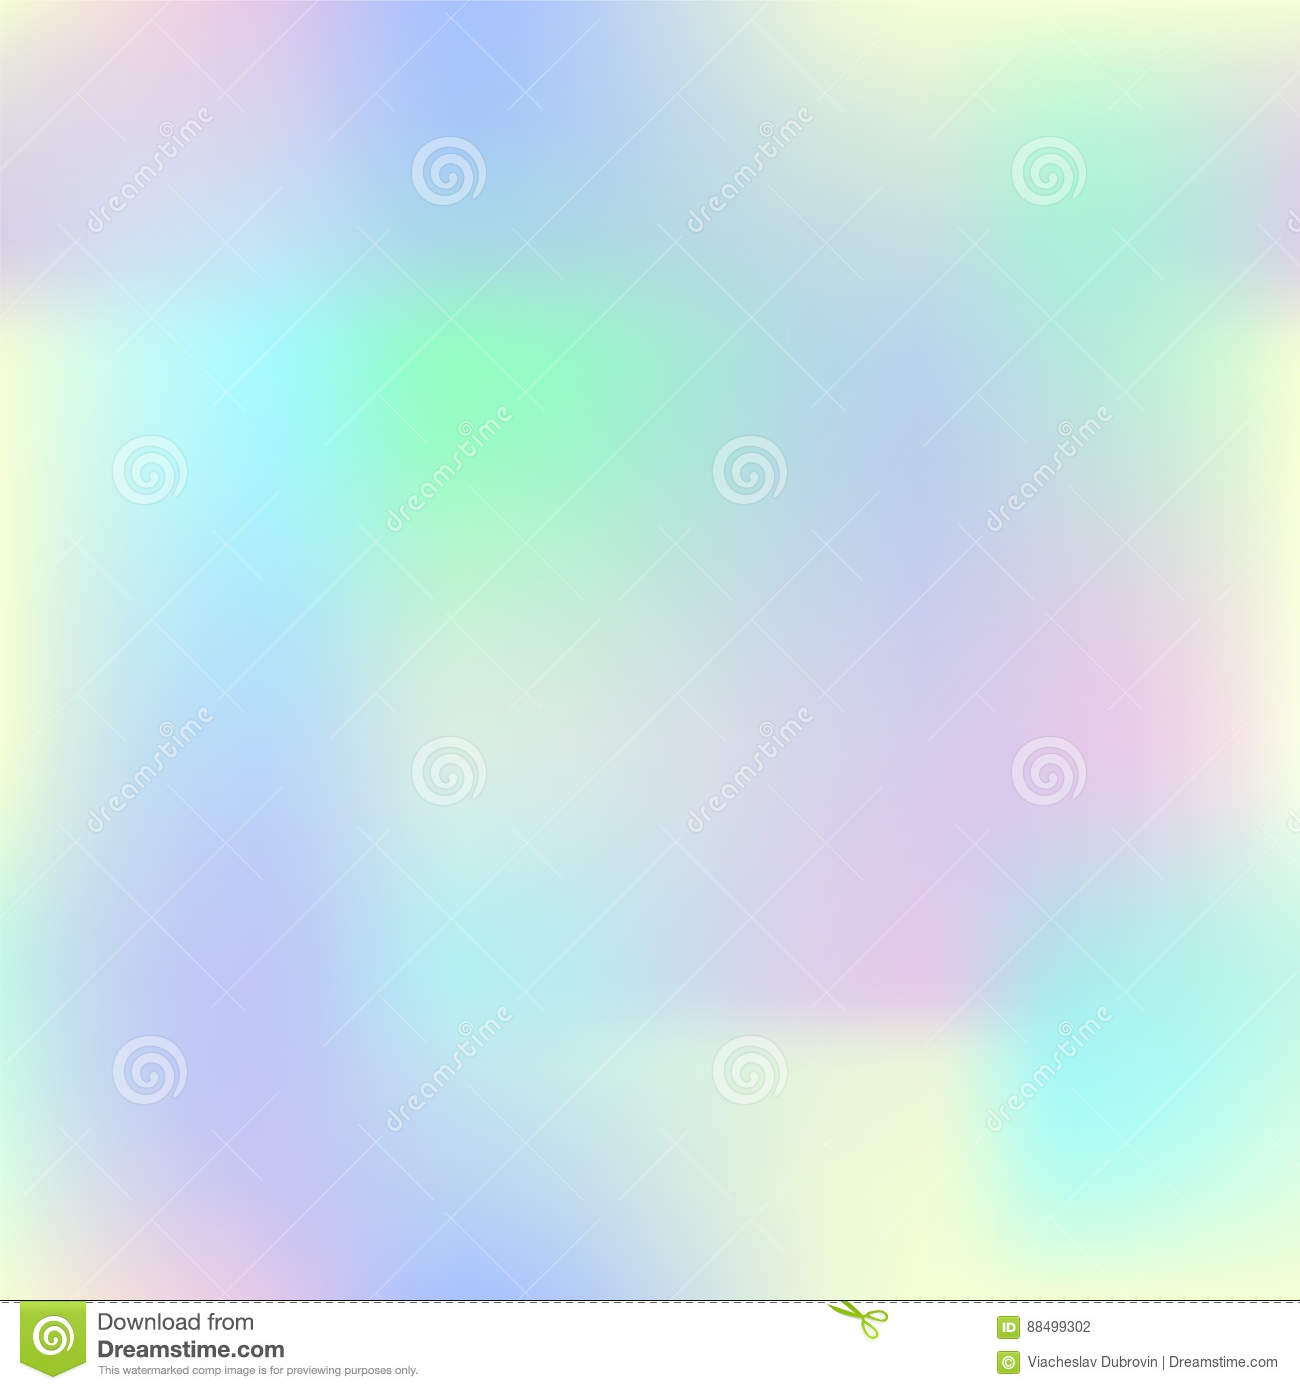 Colorful Gradient Mesh With Yellow, Pink, Blue And Green. Pale ...